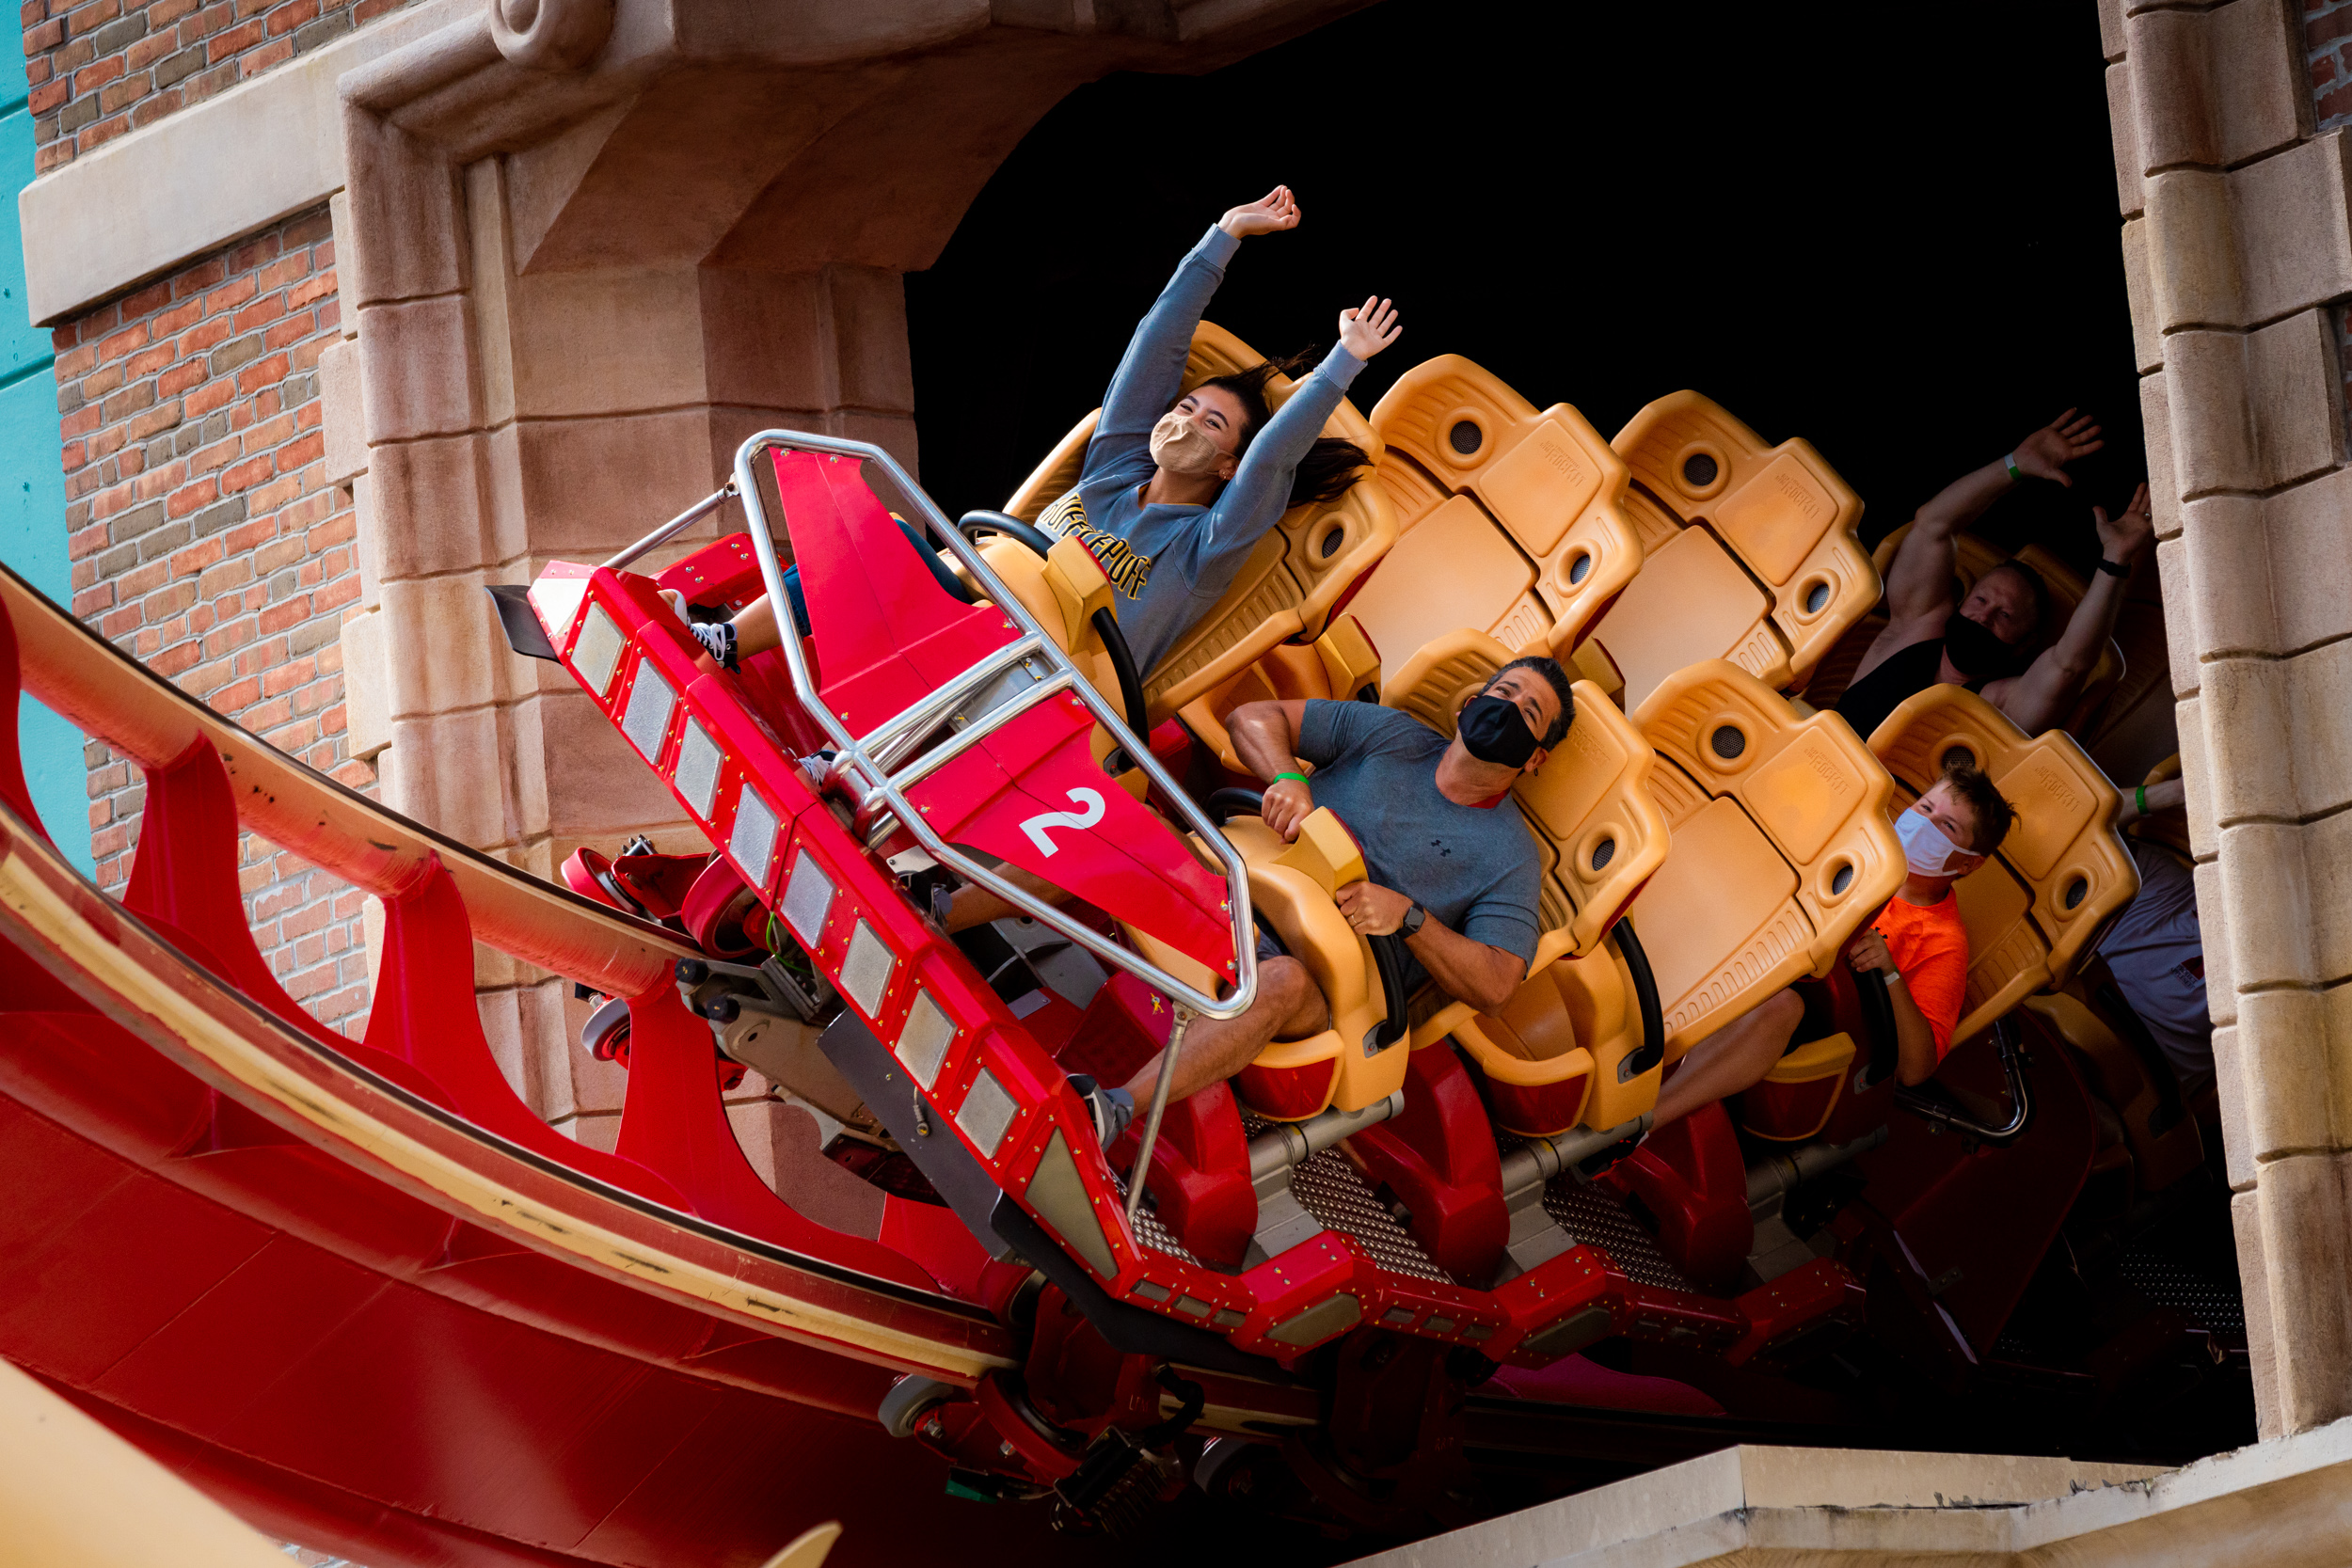 Riders aboard Hollywood Rip Ride Rockit at Universal Studios Florida